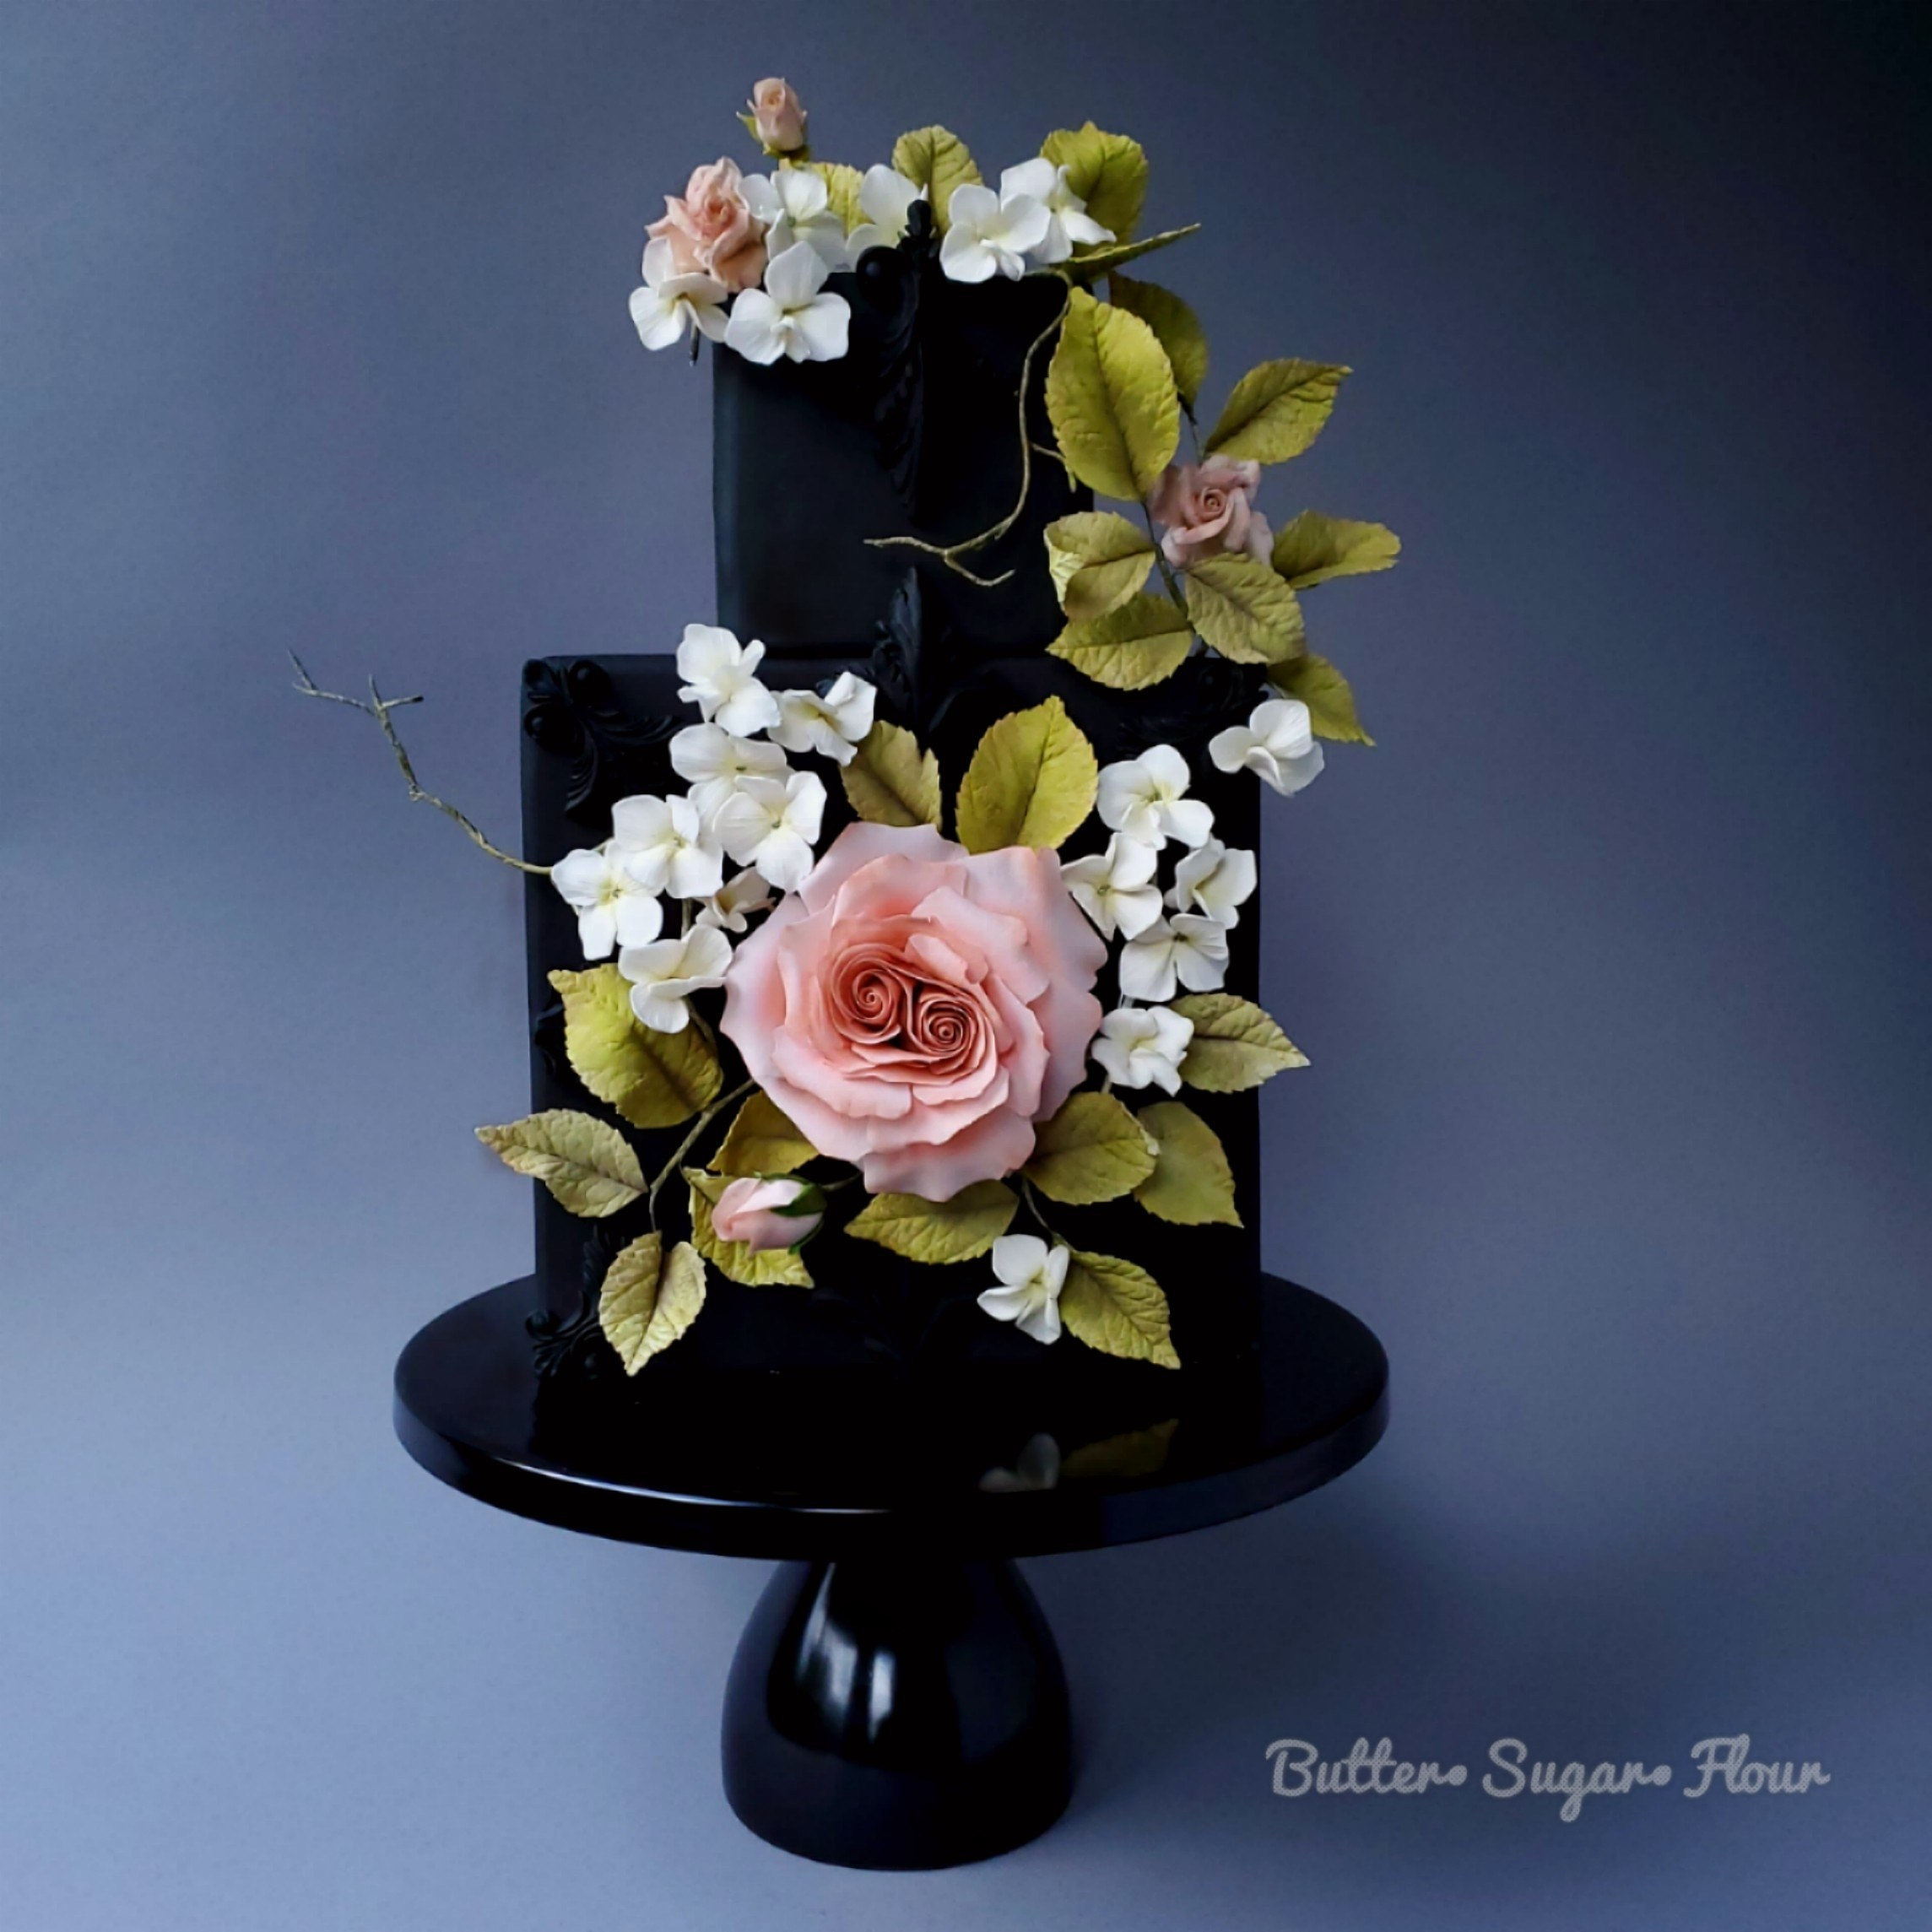 All black fondant cake covered with blush sugar flowers